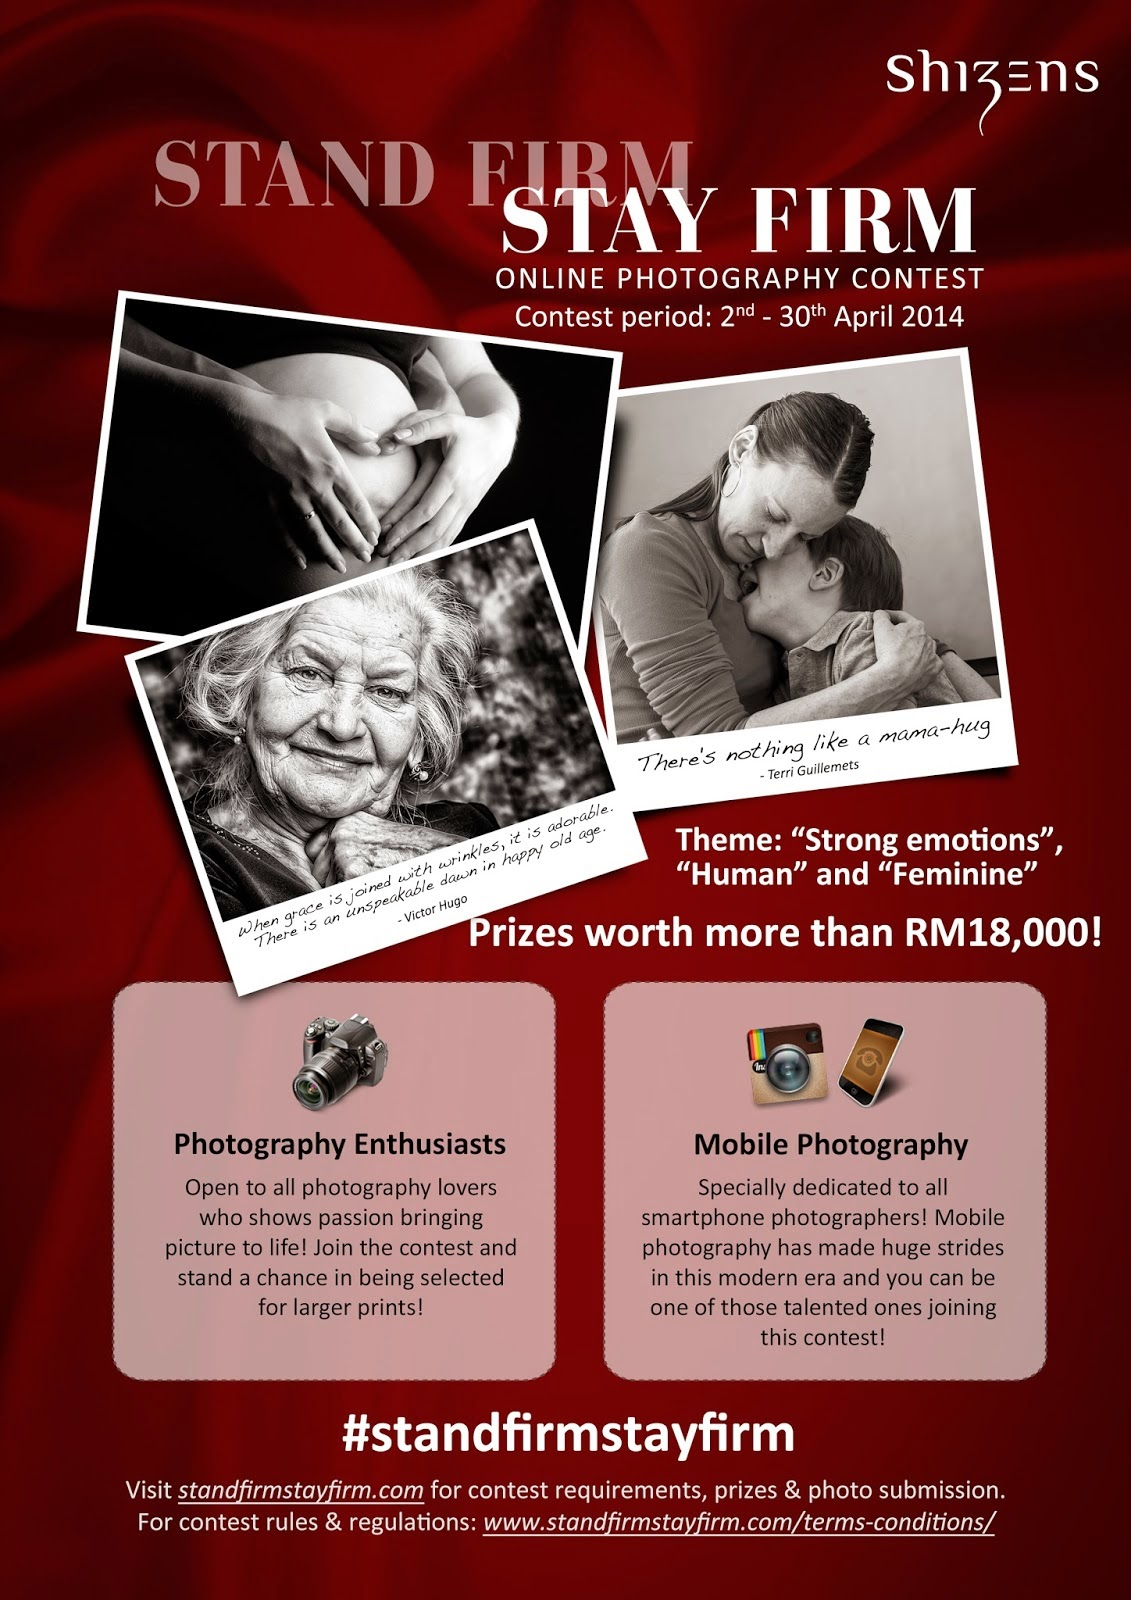 image-shizens-online-photography-contest-malaysia-prizes